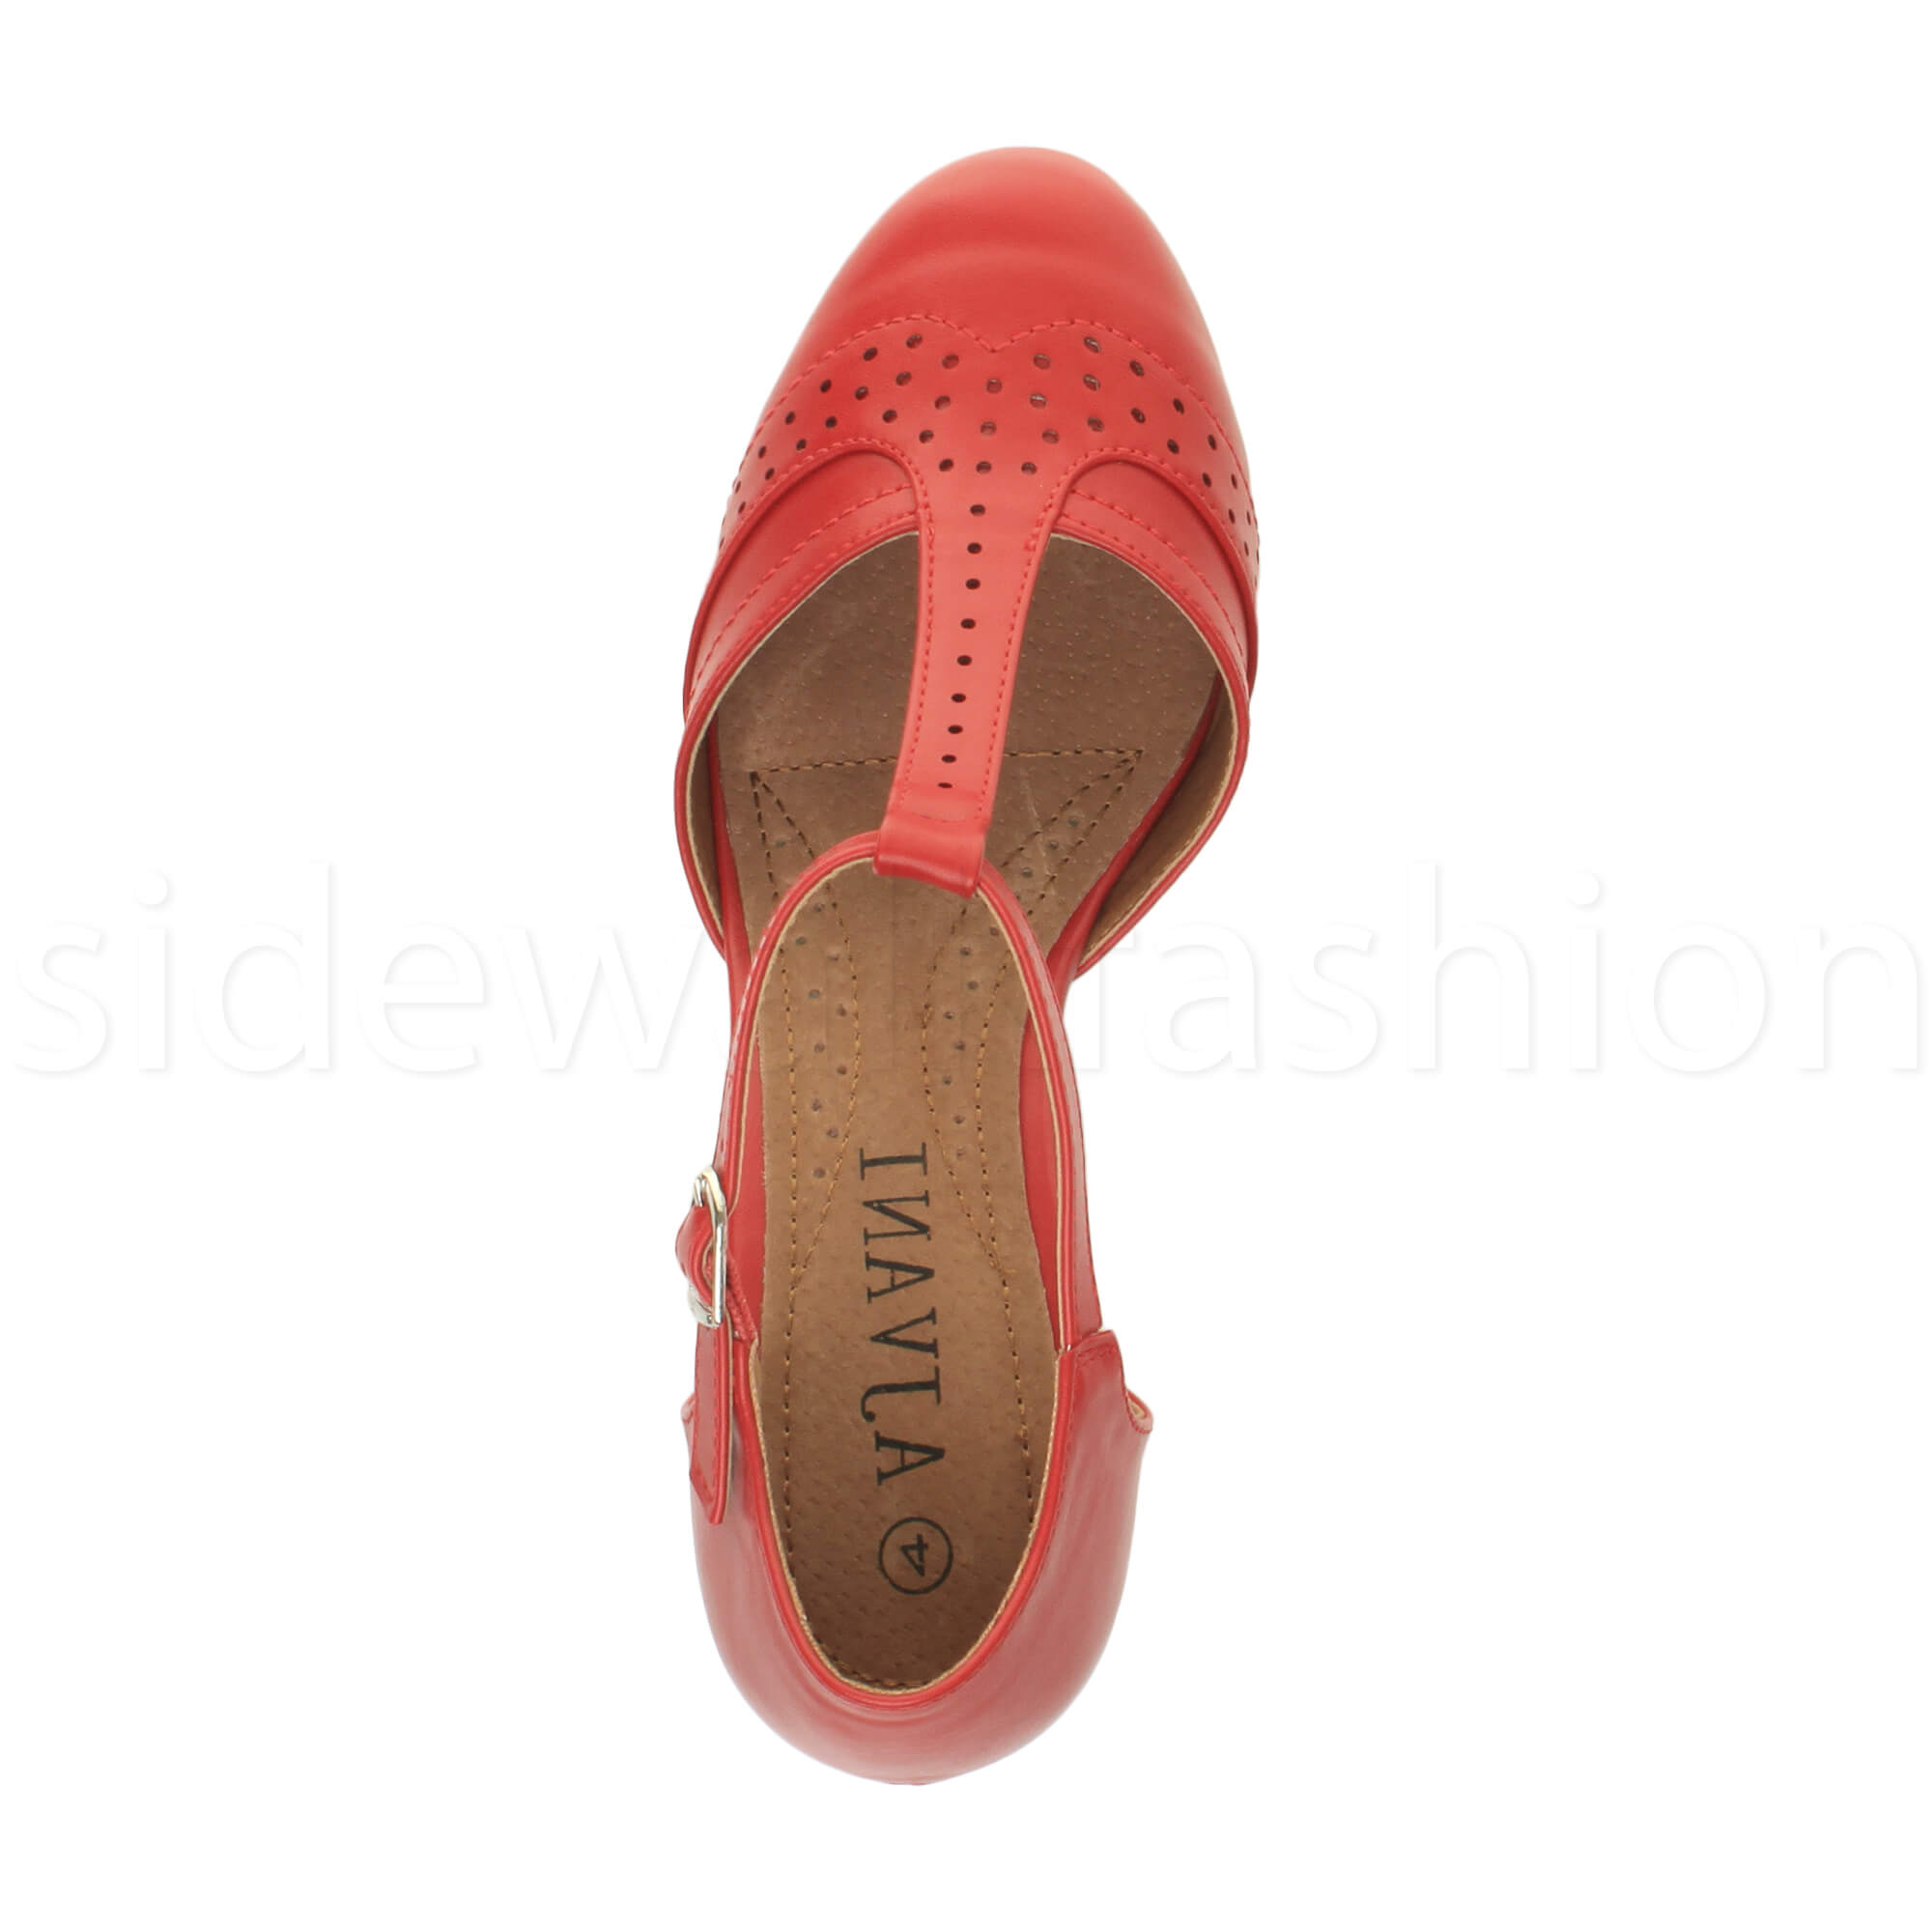 Womens-ladies-block-low-mid-heel-smart-work-Mary-Jane-T-bar-brogue-court-shoes thumbnail 62